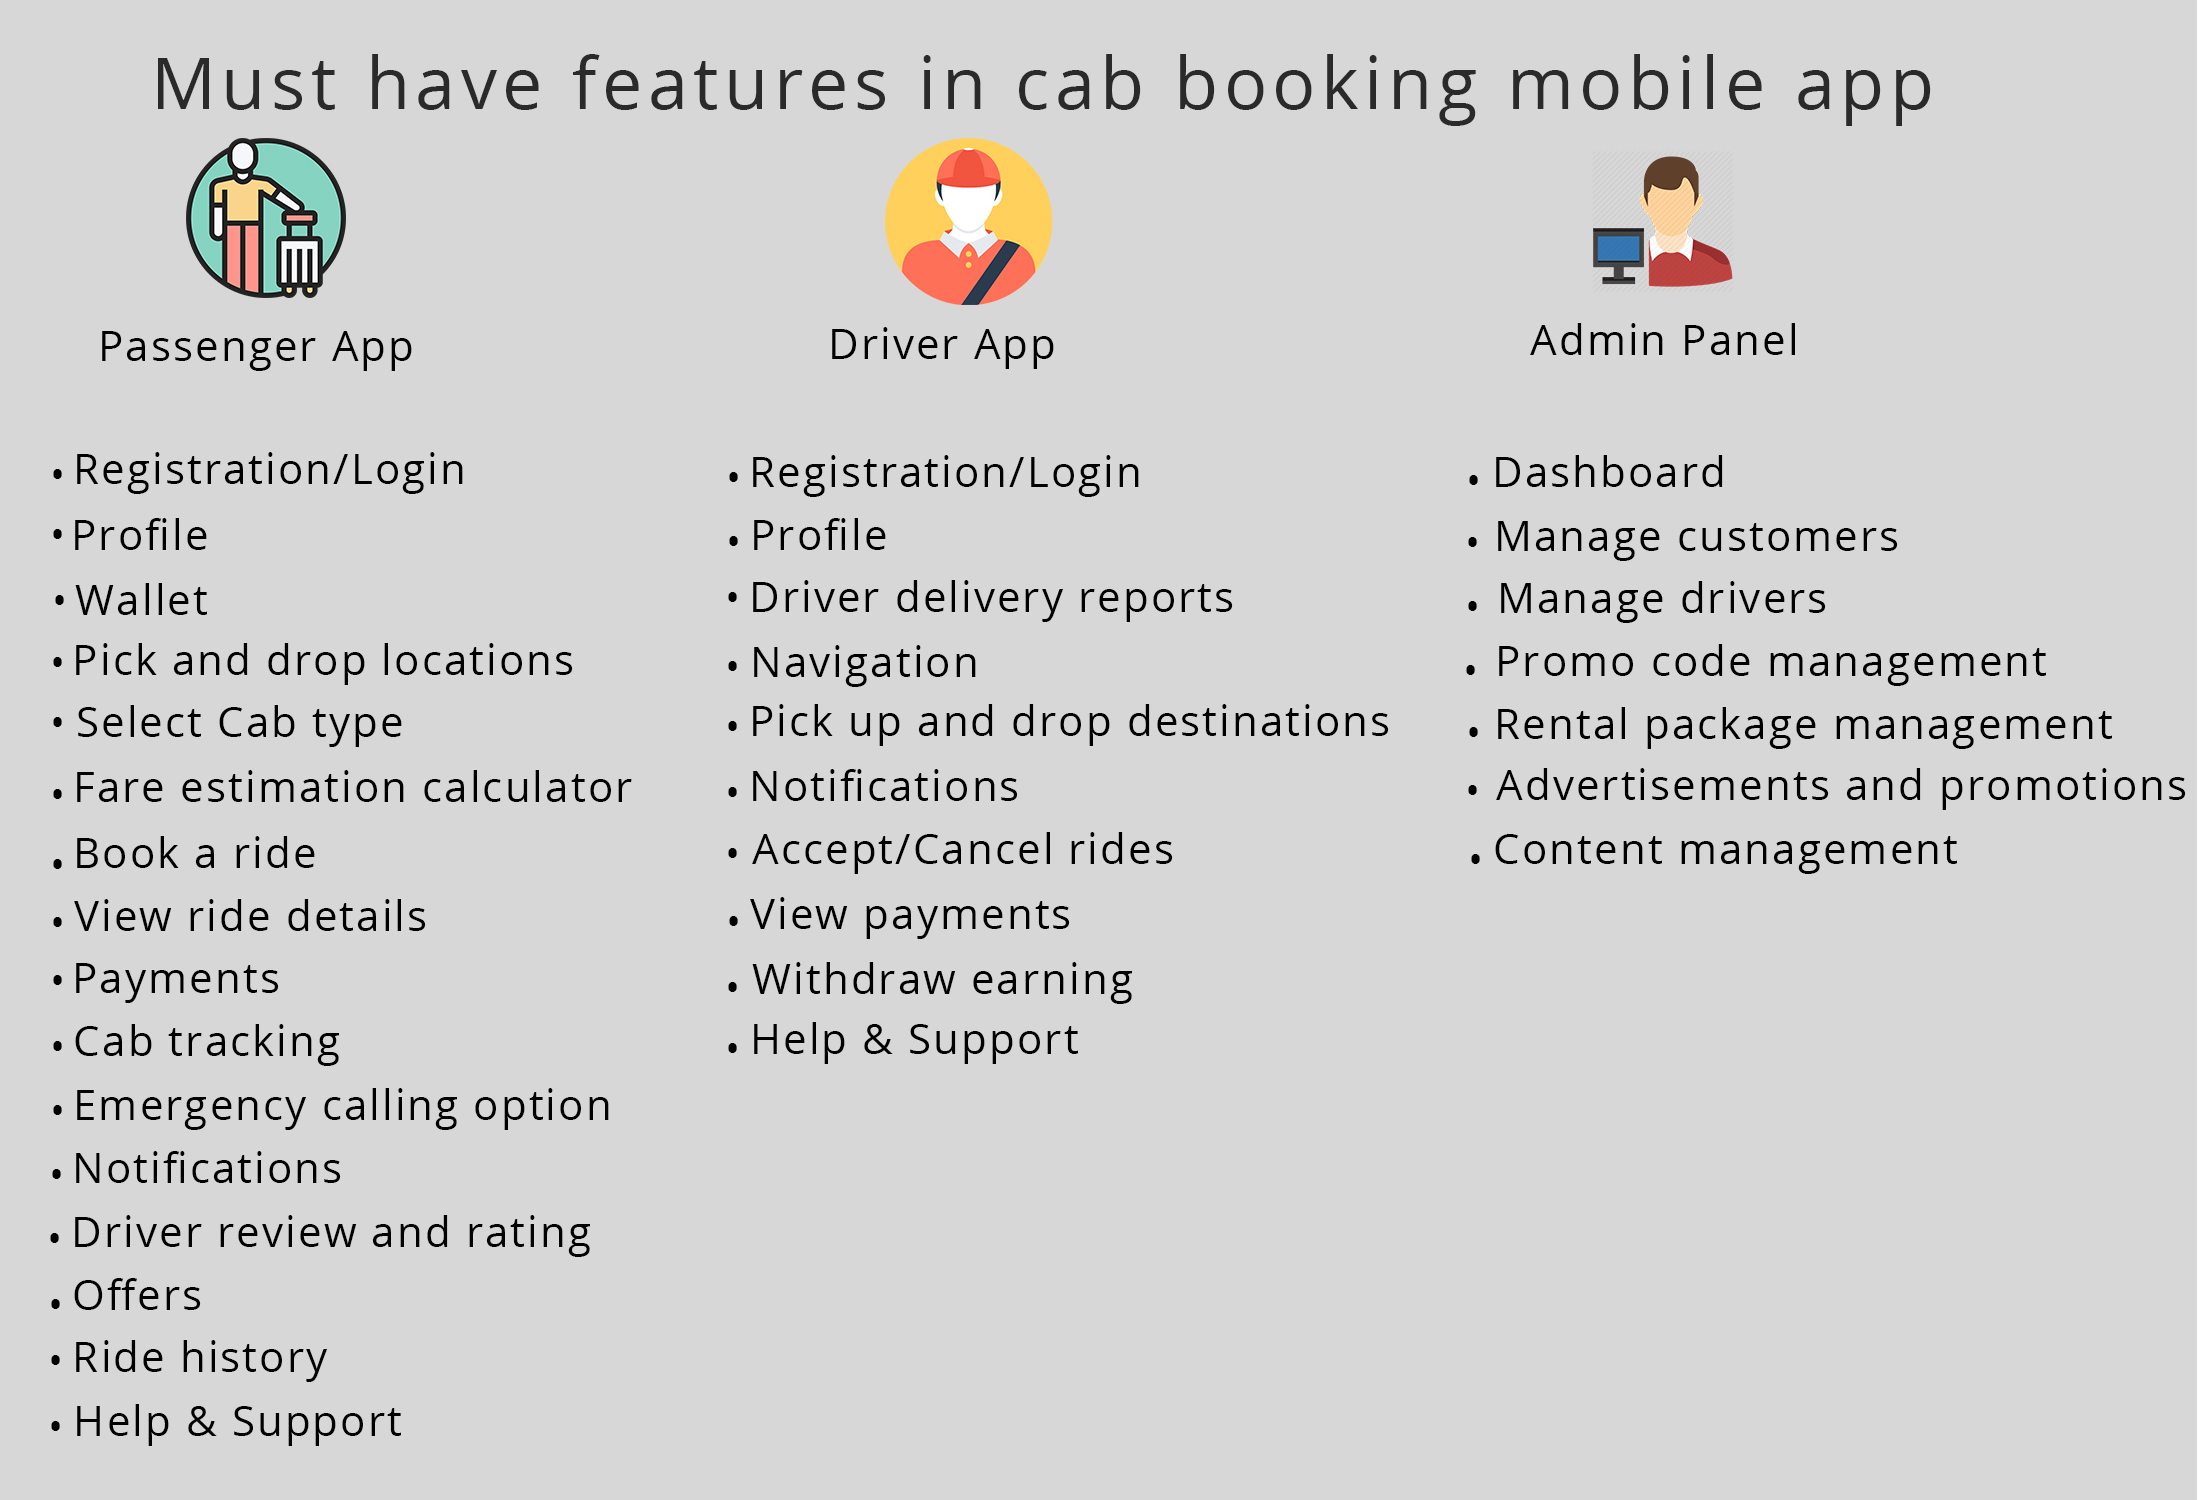 cab-booking-app-features